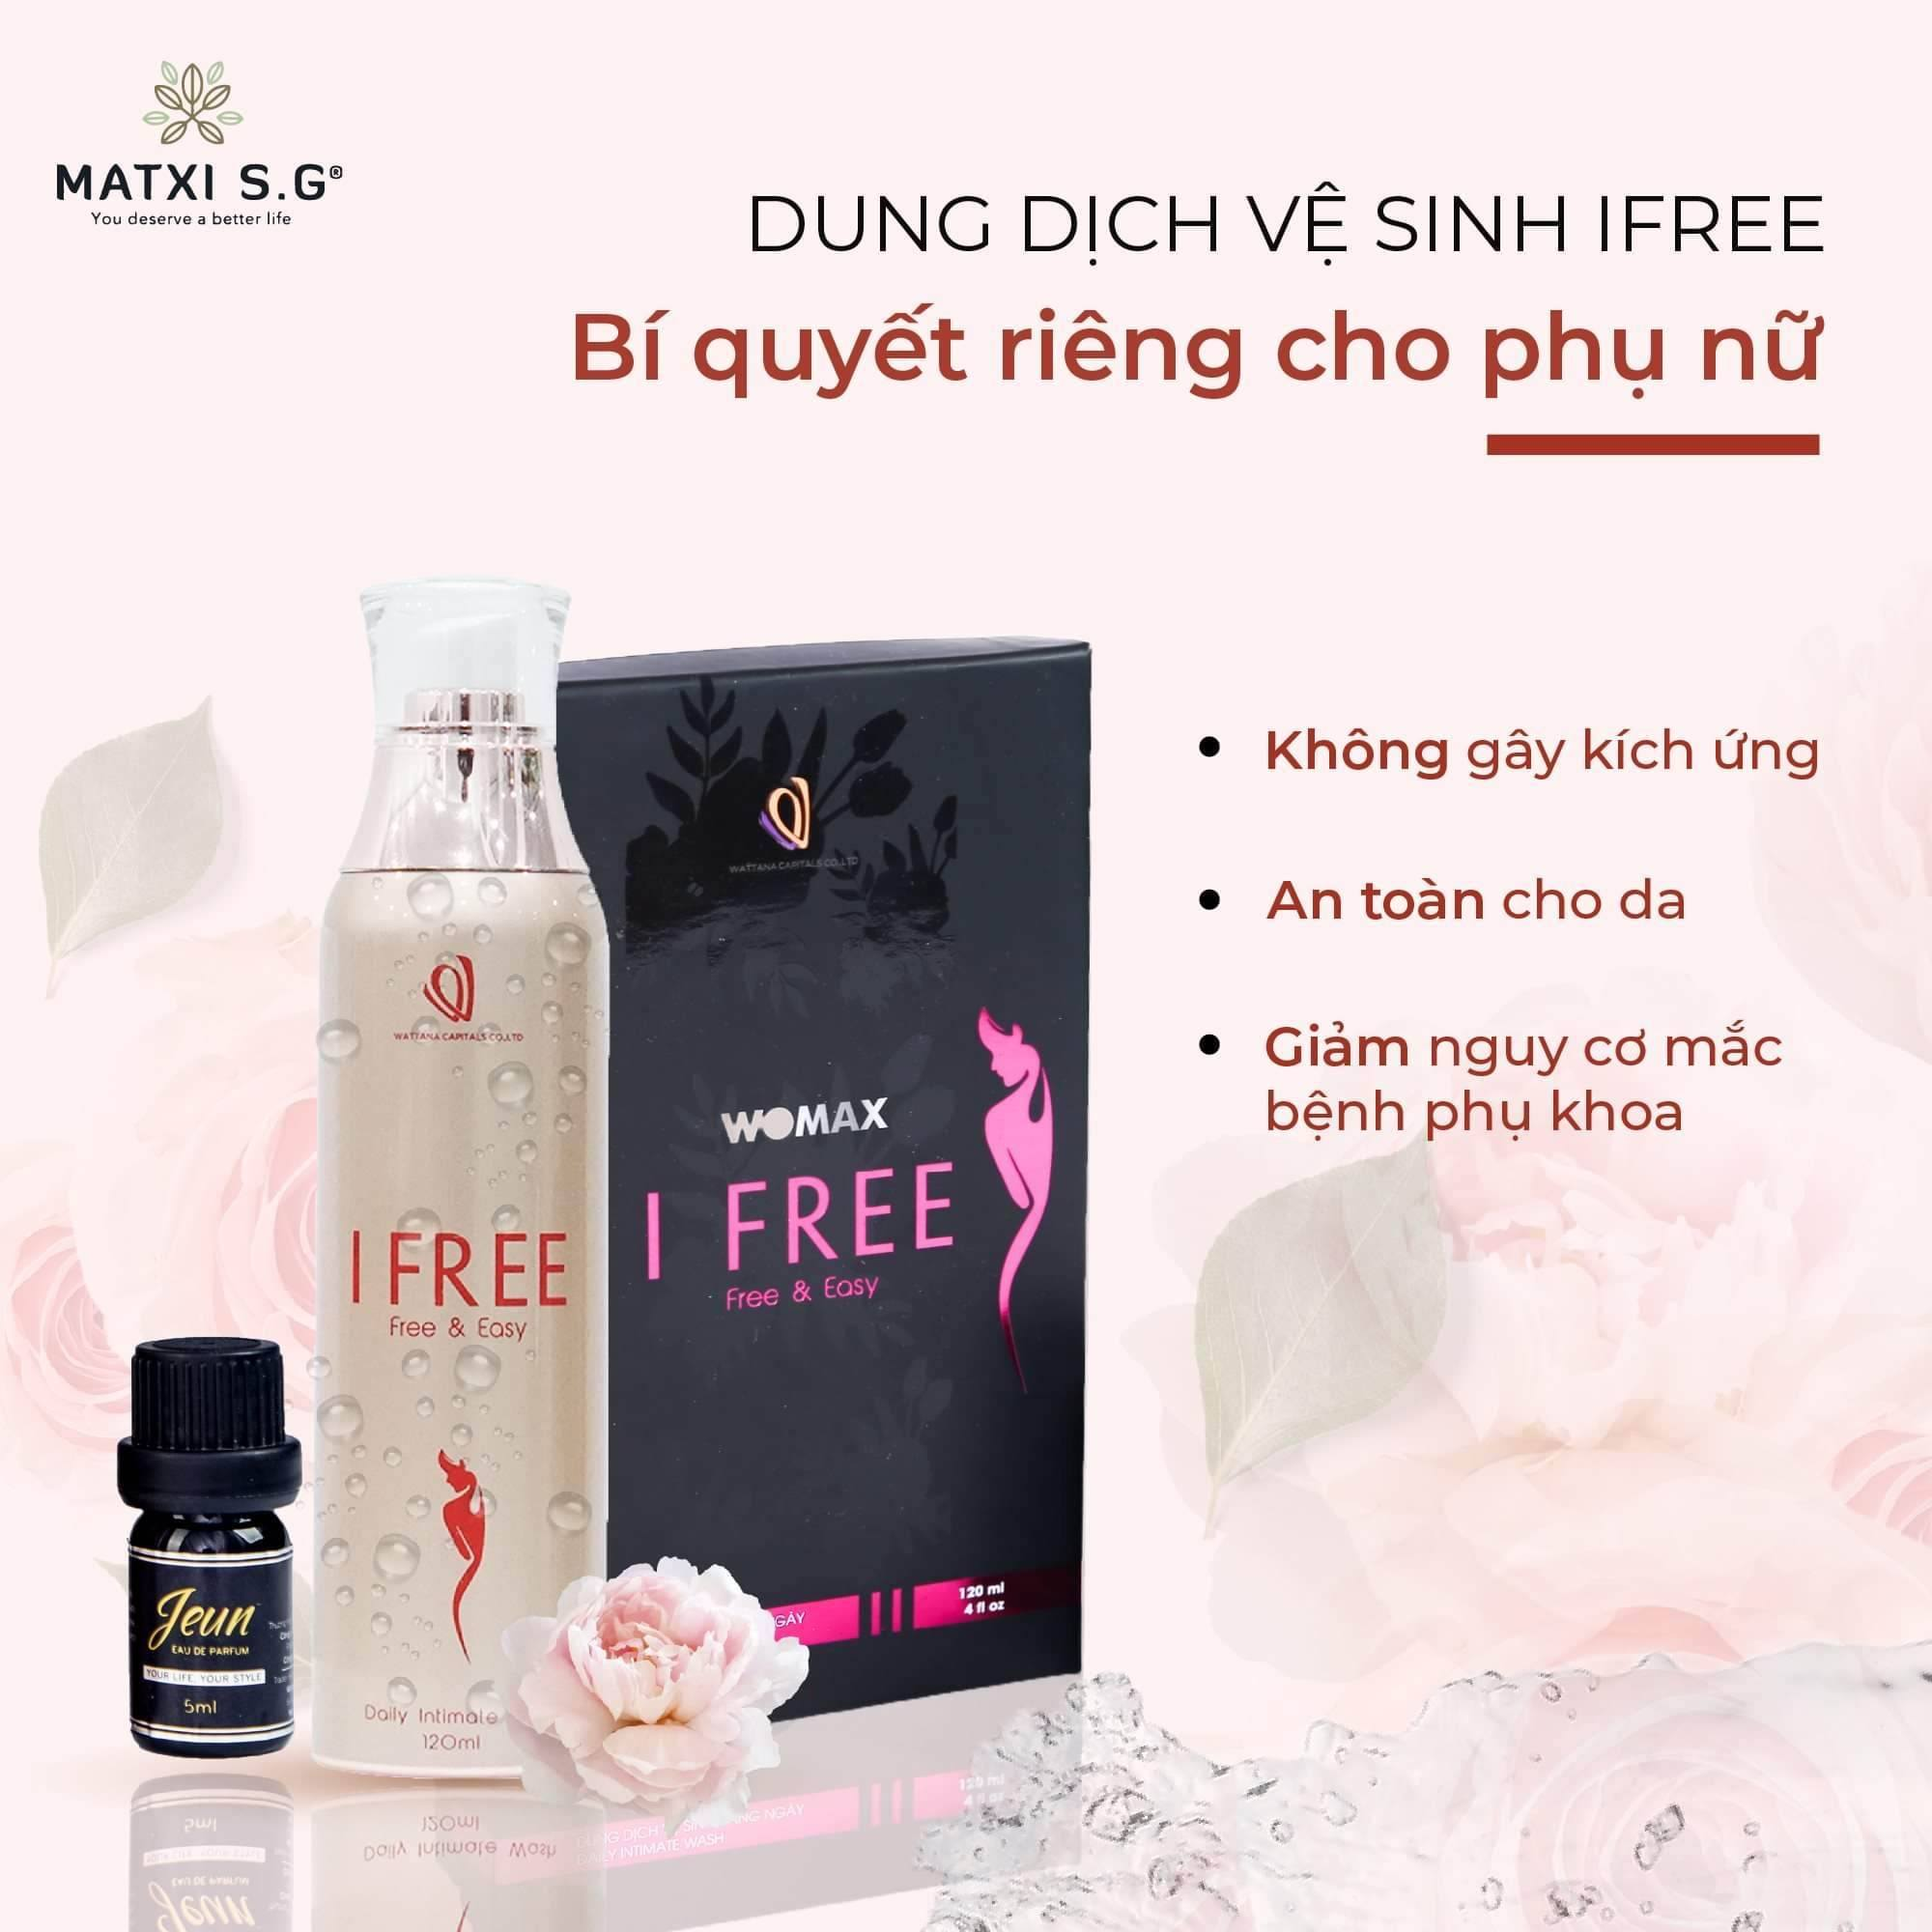 dung dich ve sinh phu nu ifree 1